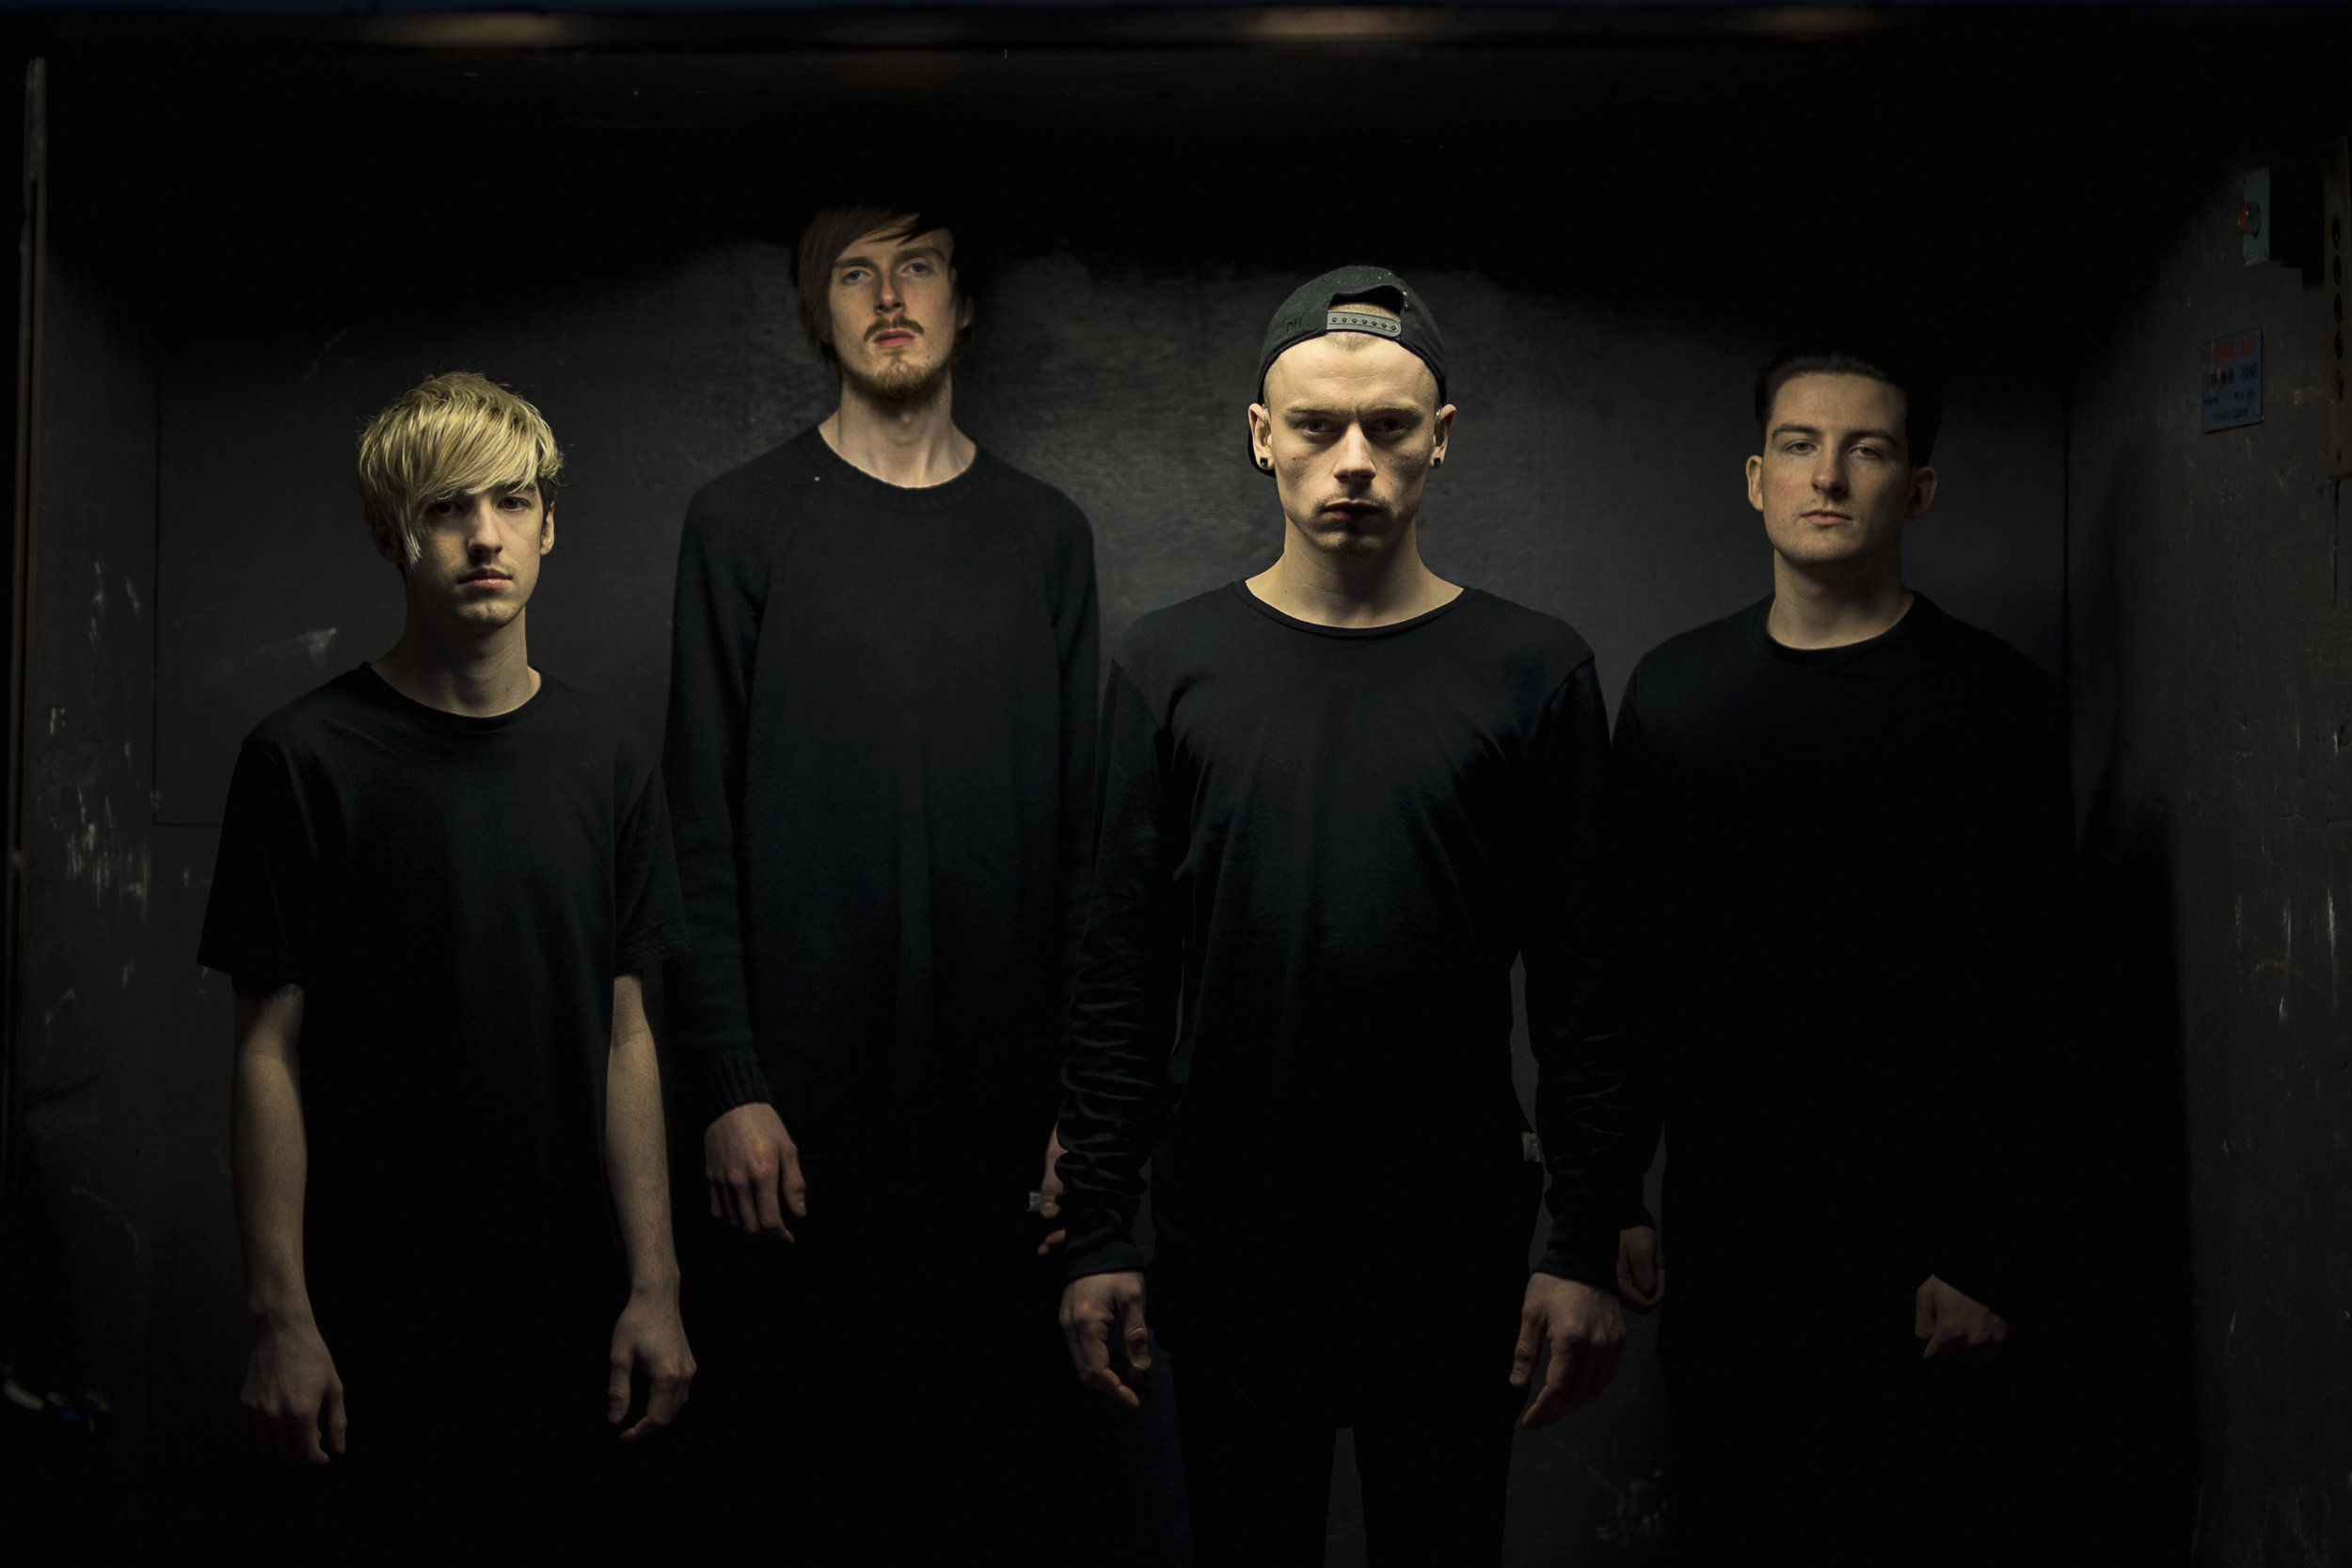 Scottish technical metalcore troupe  FROM SORROW TO SERENITY announce their signing to  Long Branch Records and their new single 'Supremacy', which lands on February 22nd.  Having formed in 2013, FROM SORROW TO SERENITY released their roaring debut EP  Antithesis to acclaim from the UK tech-metal scene. Garnering support slots with the likes of  Chelsea Grin , Veil of Maya , Monuments , the band also played both Techabilition and UK Tech-fest.  In 2016 the band self-released their first full length album  Remnant of Humanity , and were hand-picked to tour with  Fit For An Autopsy .  Having recruited new vocalist Gaz King (formerly of  Nexilva ) the band released their new single 'Golden Age' in 2017 to showcase a step away from their deathcore roots, and a surge towards a modern tech-metalcore sound. With the release of the new single they toured the UK as support  Jinjer as part of their sold out UK run in November 2017.  The band will also open for  Betraying The Martyrs and  Modern Day Babylon on their March 2018 tour of Europe and the UK. A full album is planned for late 2018.  LINE-UP  Gaz King - Vocals Steven Jones - Guitars Andrew Simpson - Bass Ian Baird - Drums